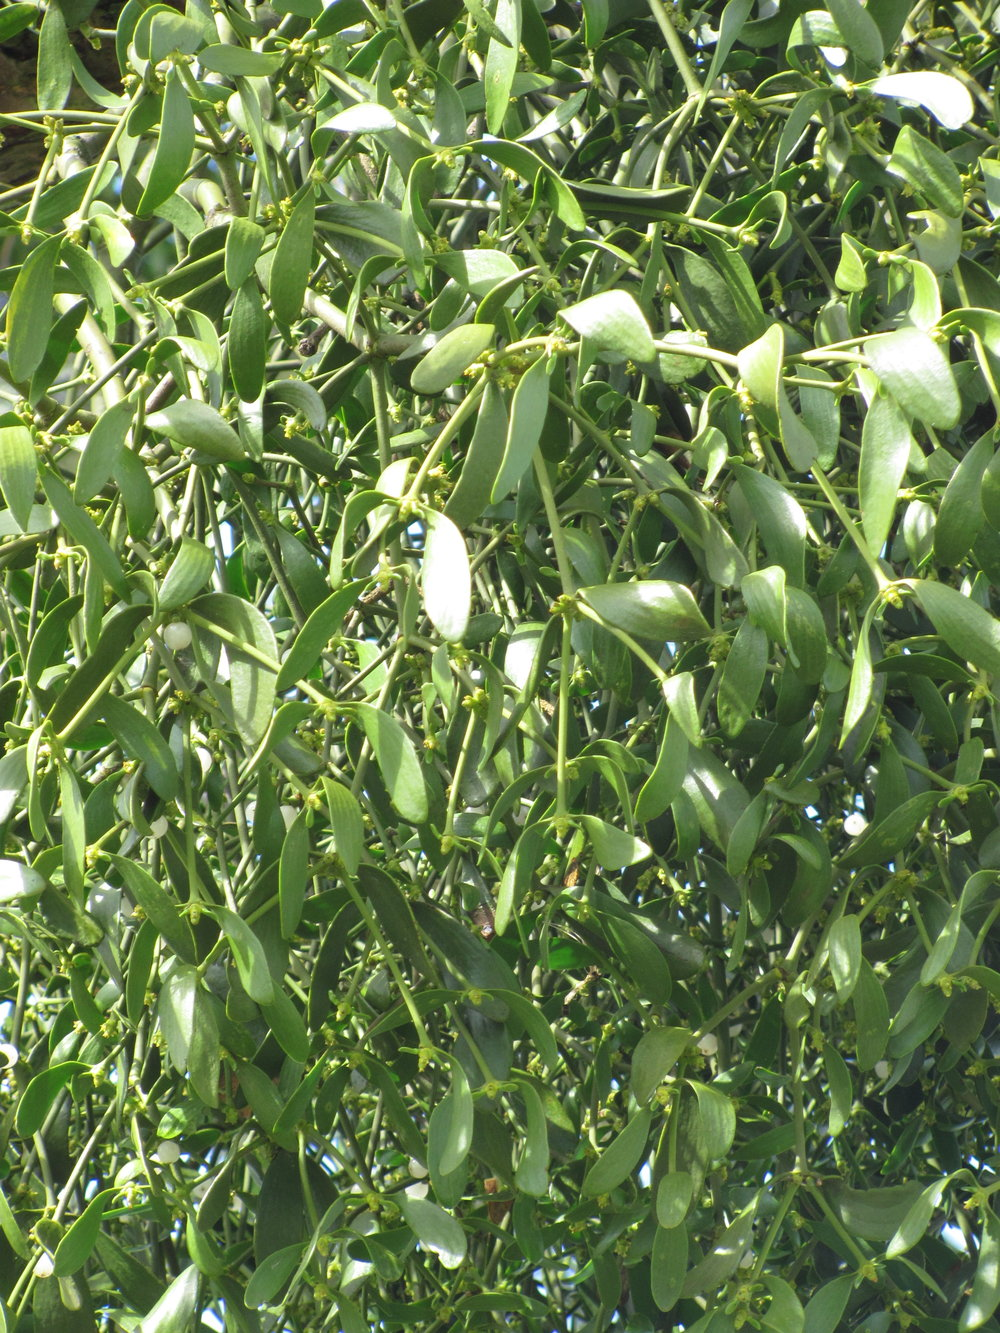 Mistletoe's white berries can be seen in early spring.